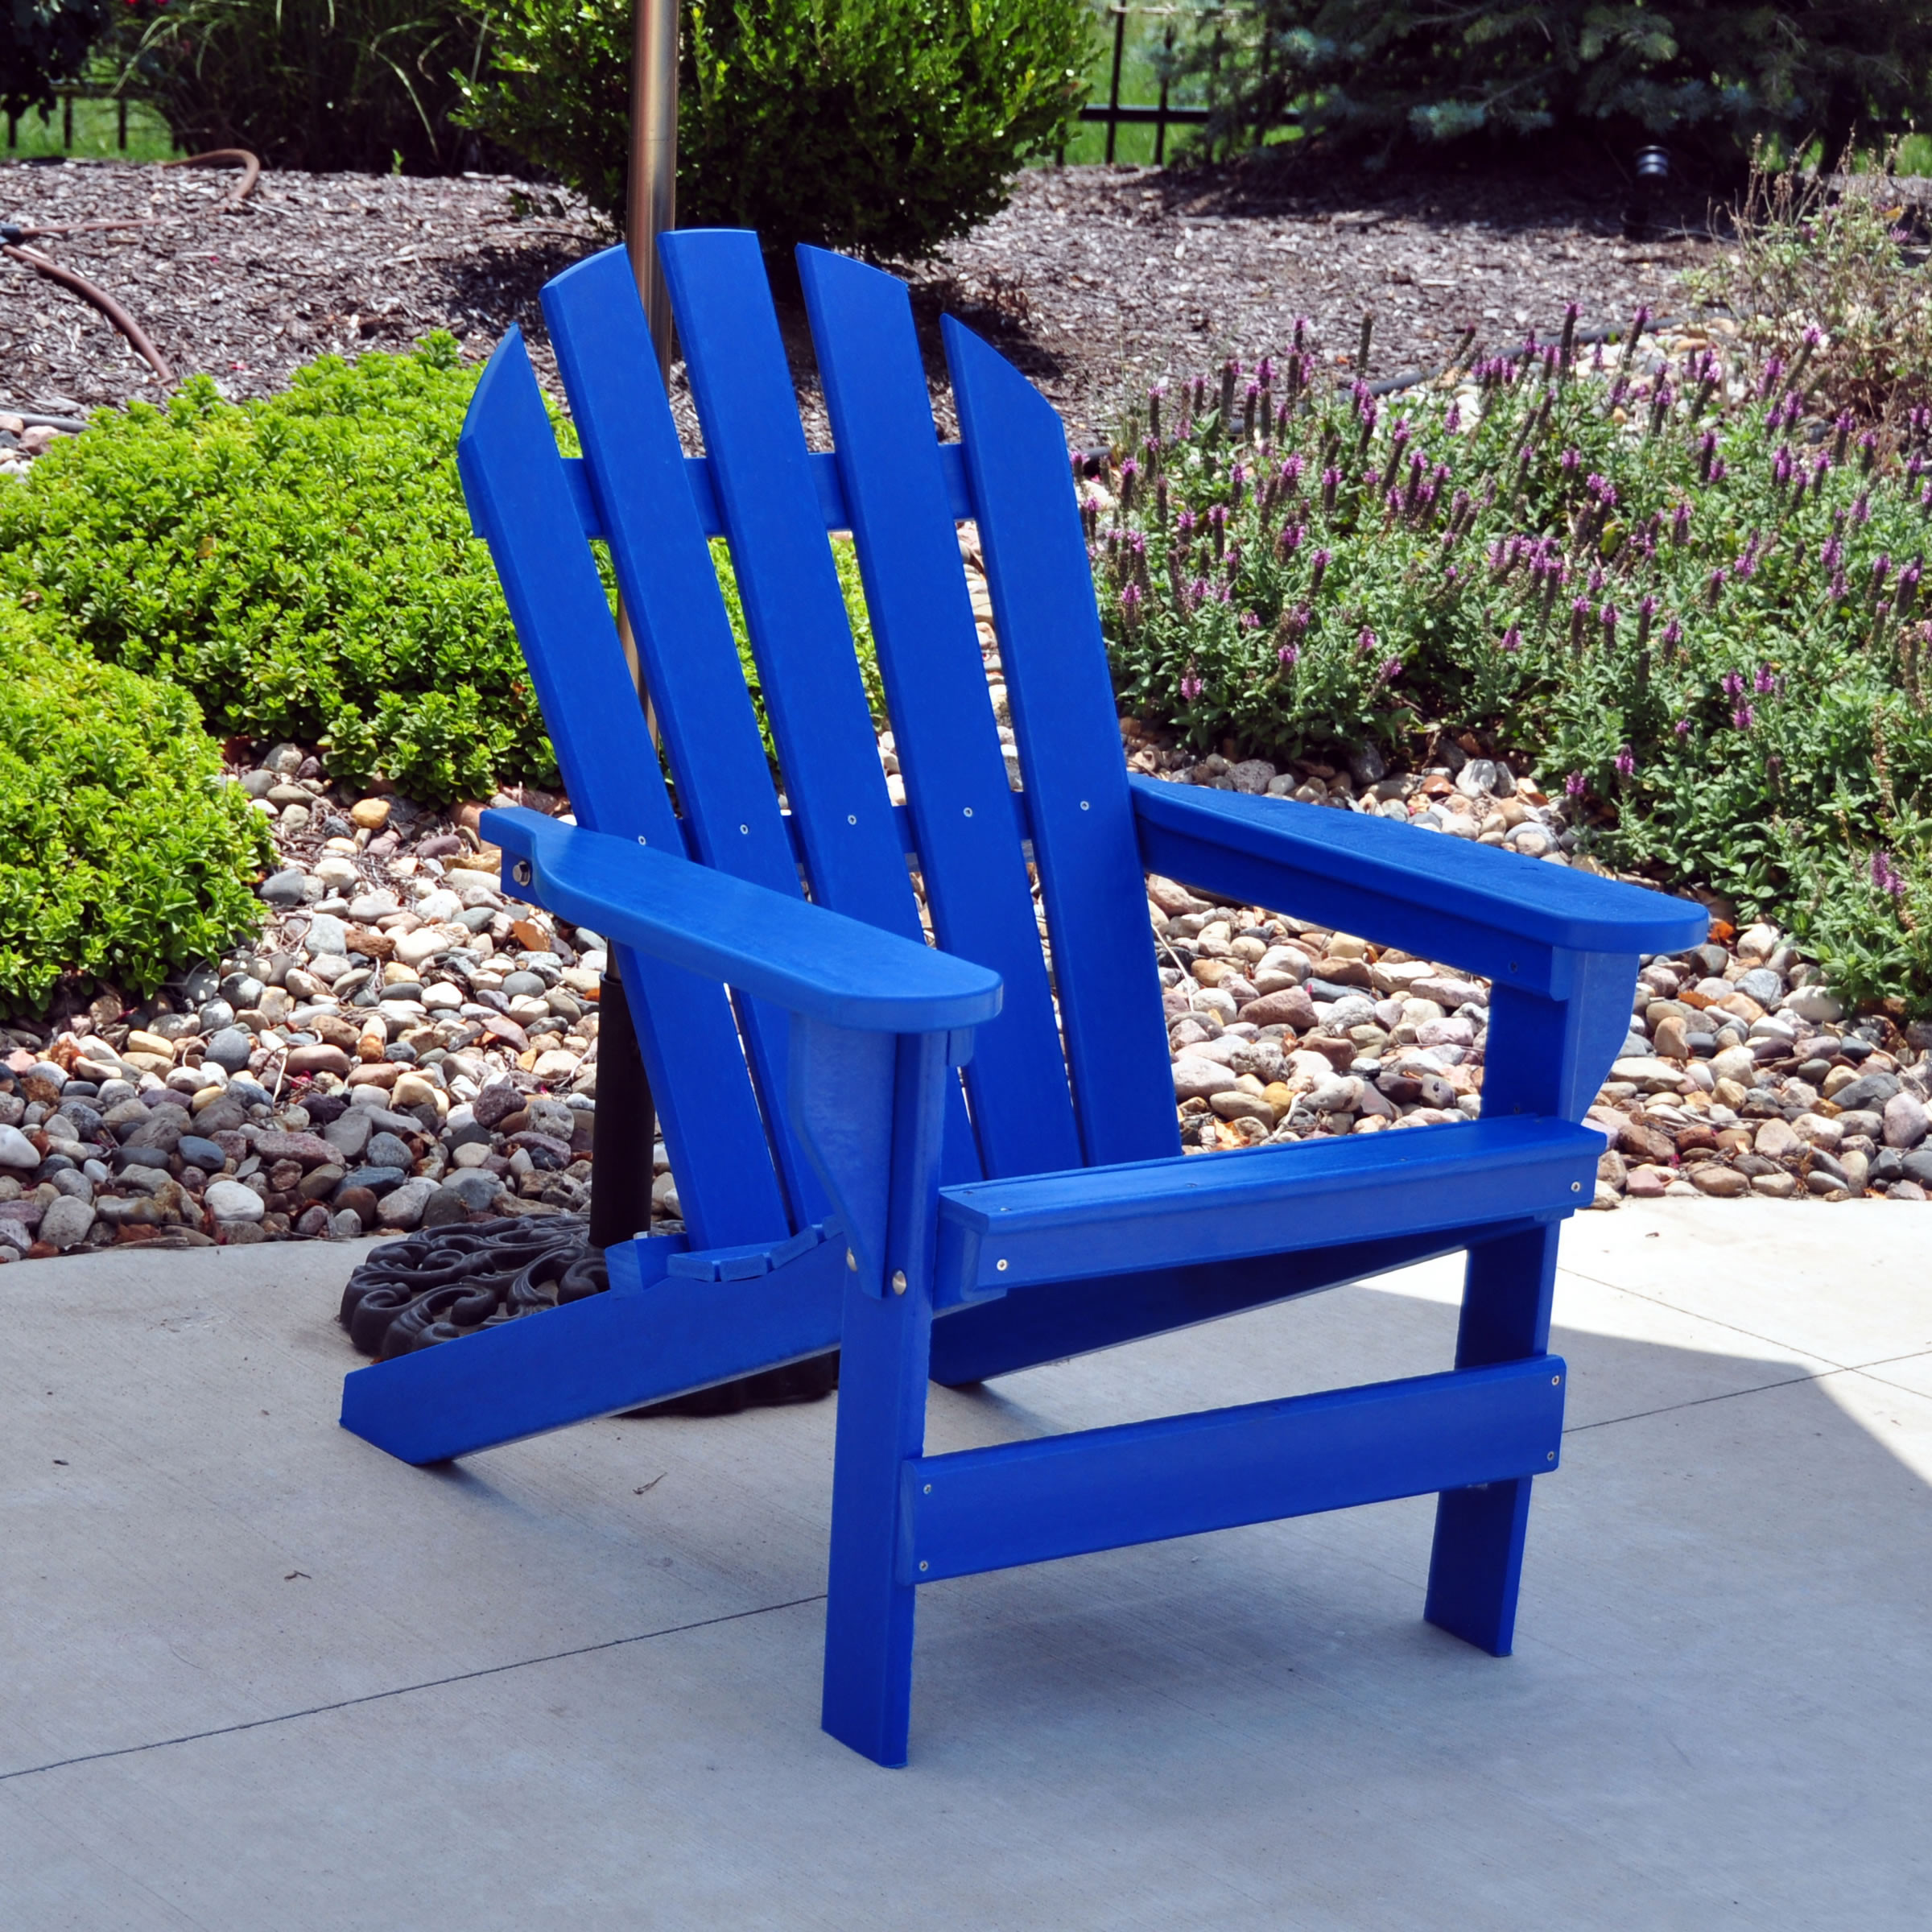 royal blue adirondack chairs chairs seating. Black Bedroom Furniture Sets. Home Design Ideas